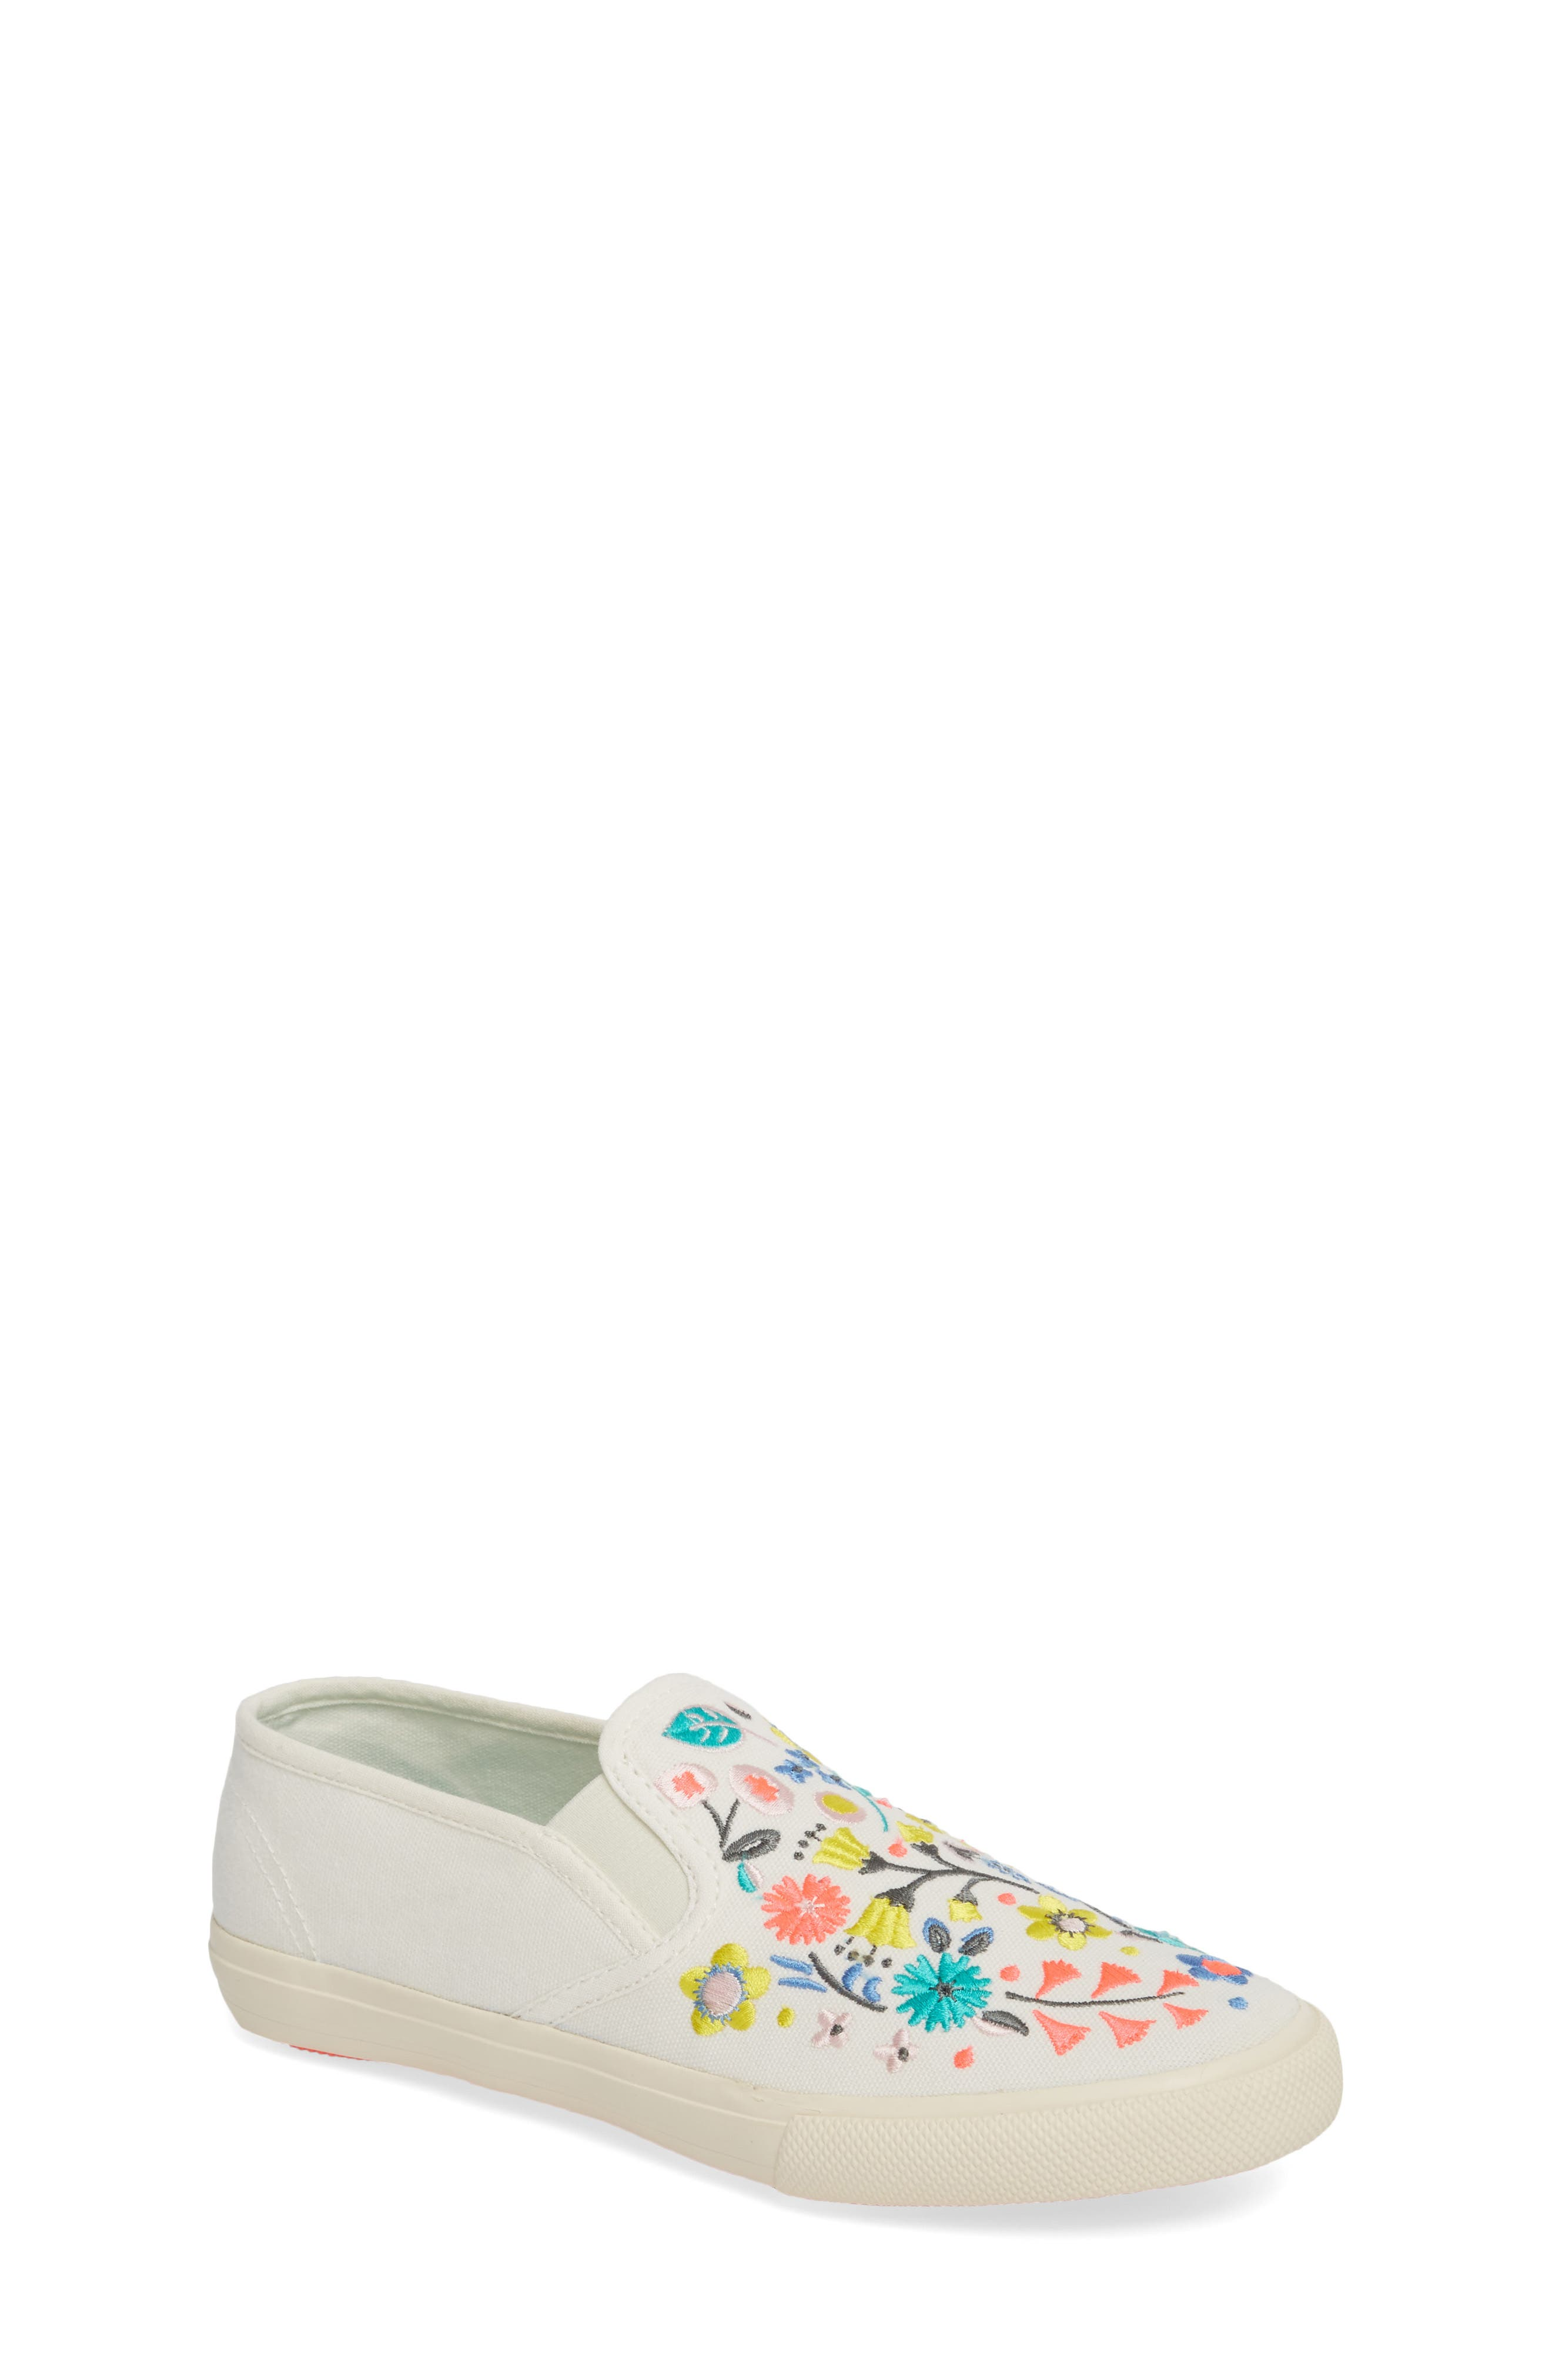 Boden Embroidered Slip-On Sneaker,                         Main,                         color, 114